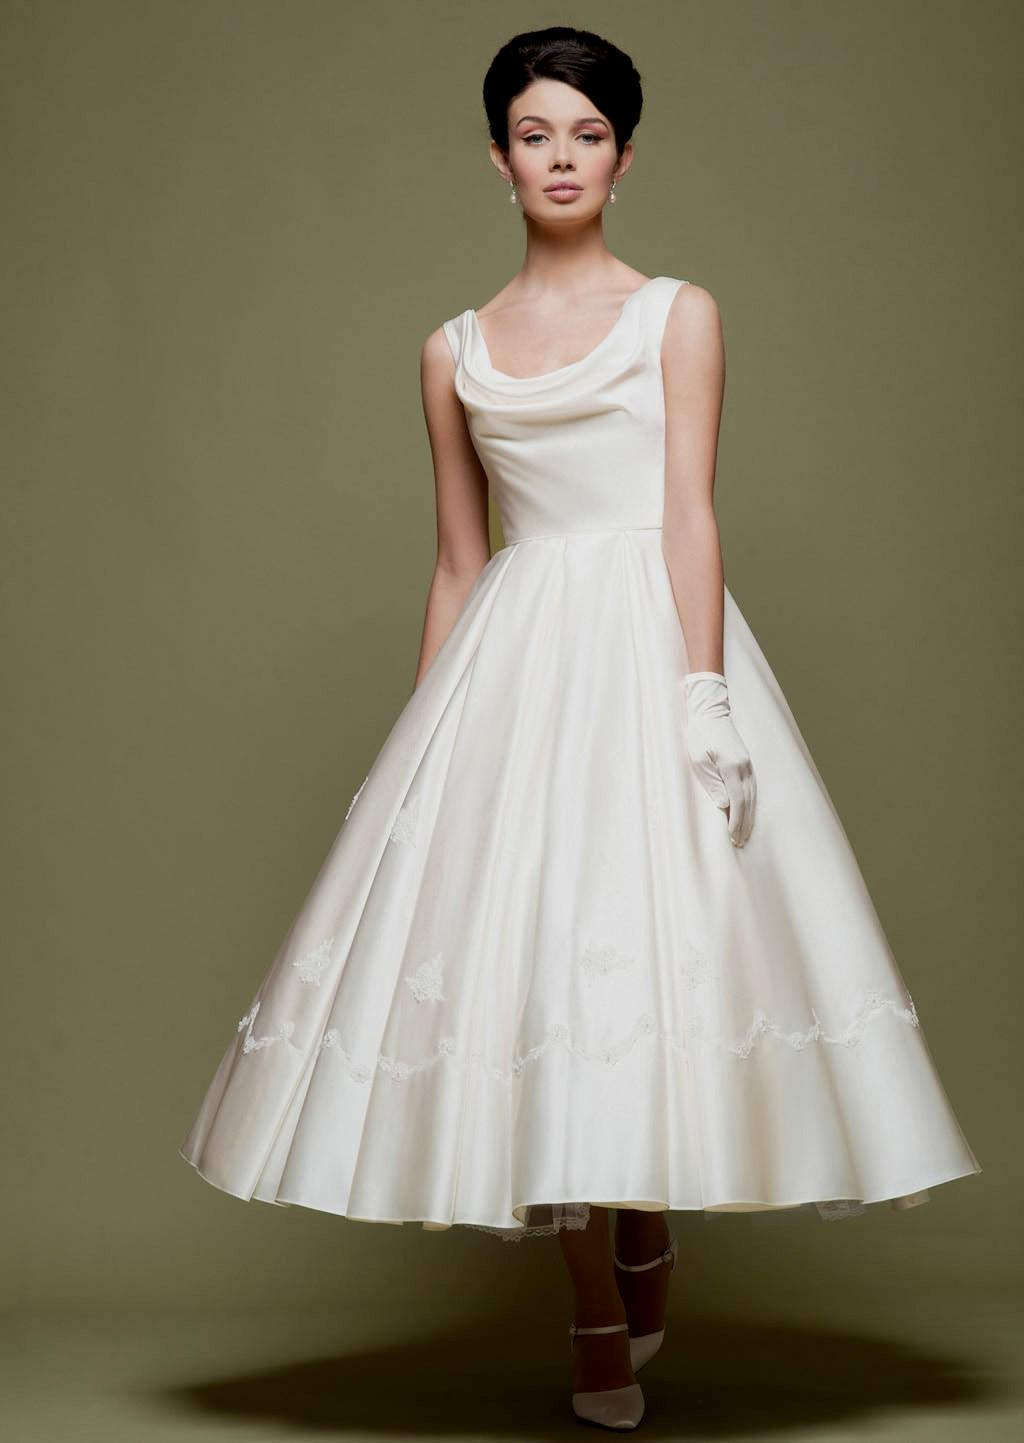 50 style wedding dresses photo - 1